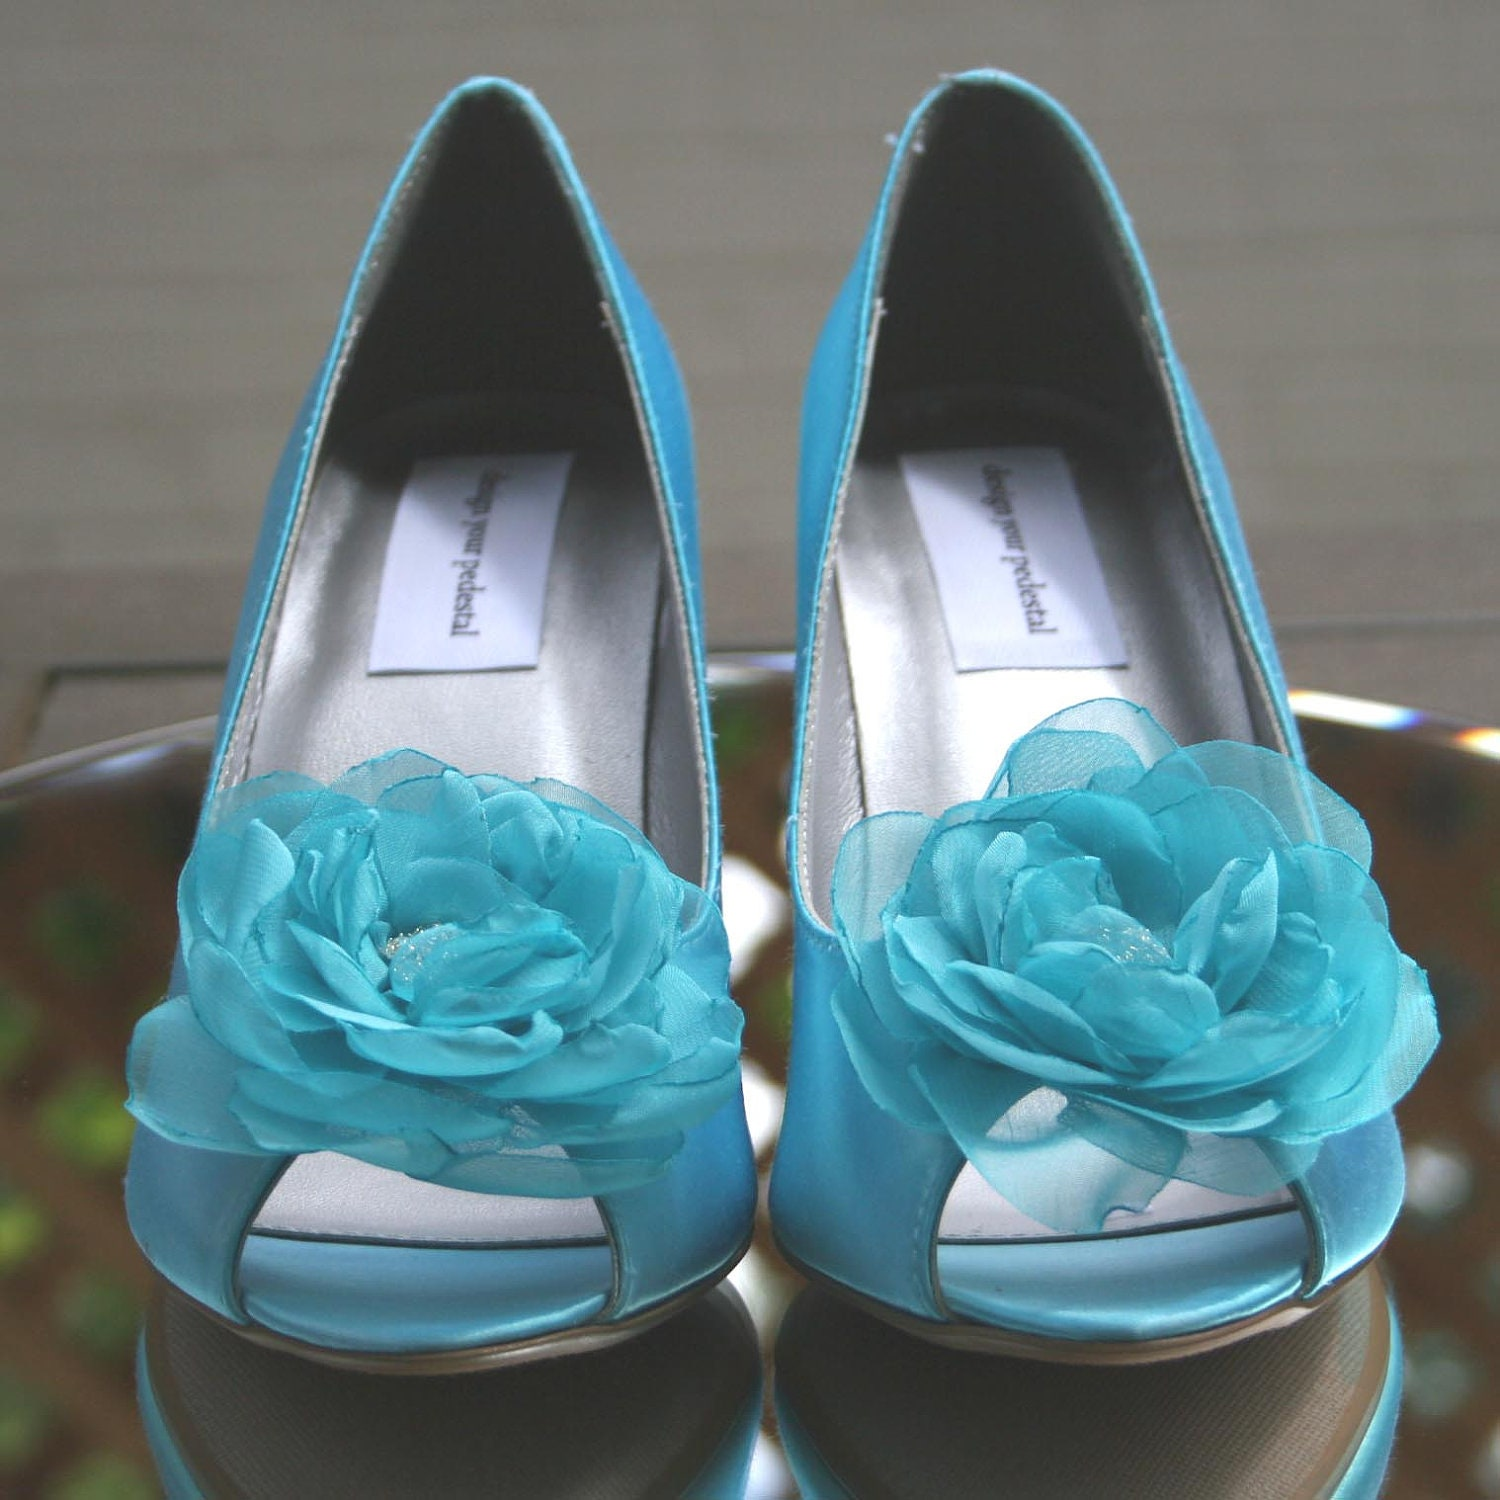 Items Similar To Wedding Shoe Clips -- Pool Blue Flower